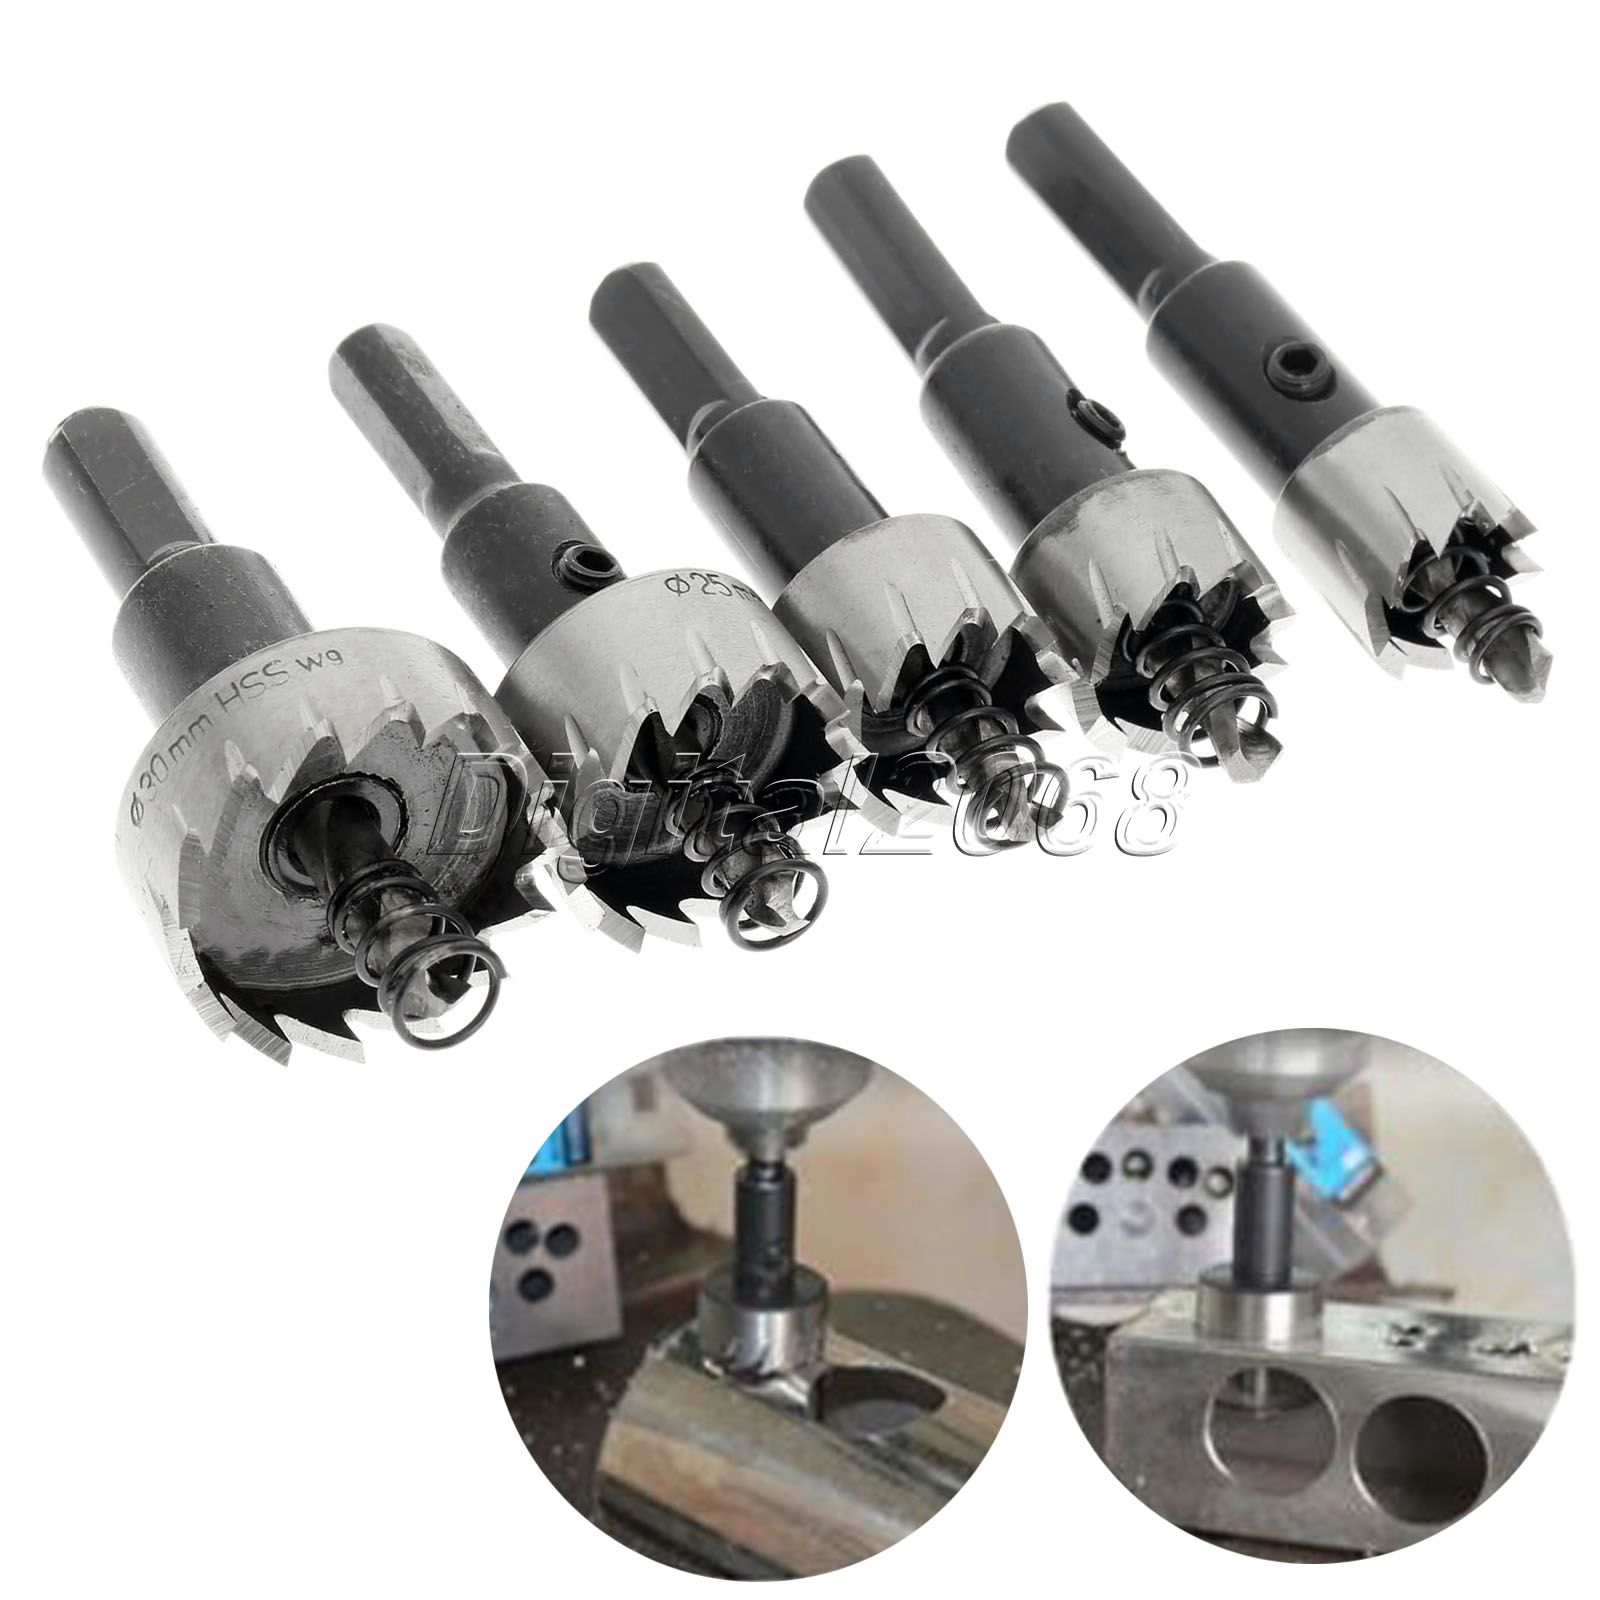 5PCS Drill Bits Hole Saw Set Carbide Tip HSS High Speed Steel Stainless Steel Metal Alloy Drilling Power Tools+Wrench 16mm-30mm 13pcs lot hss high speed steel drill bit set 1 4 hex shank 1 5 6 5mm free shipping hss twist drill bits set for power tools